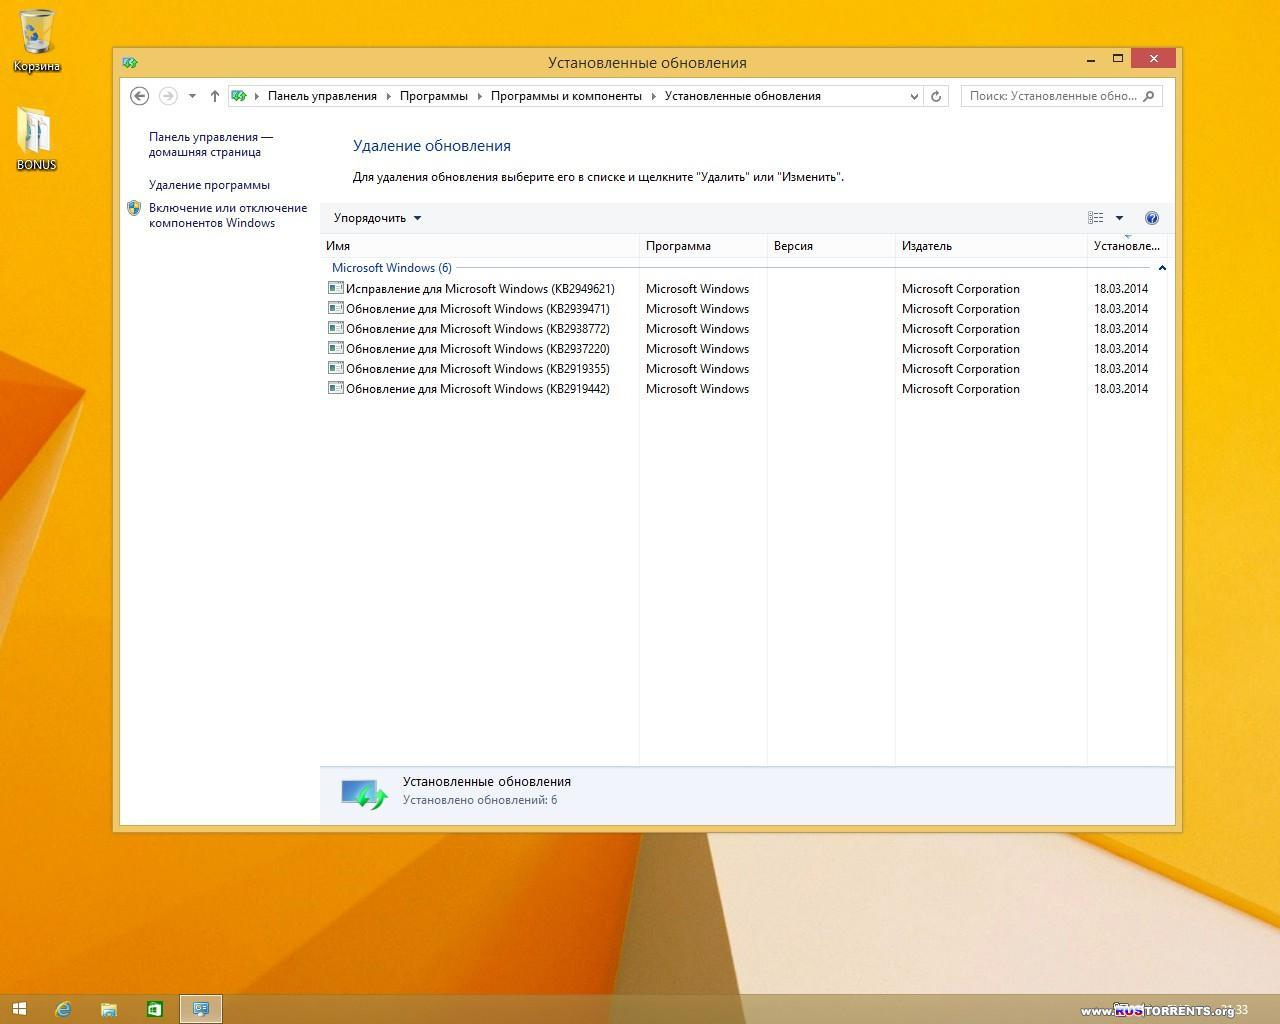 Windows 8.1 Professional VL �86/�64 with Update 2DVD by Andreyonohov 31.07.2014 RUS